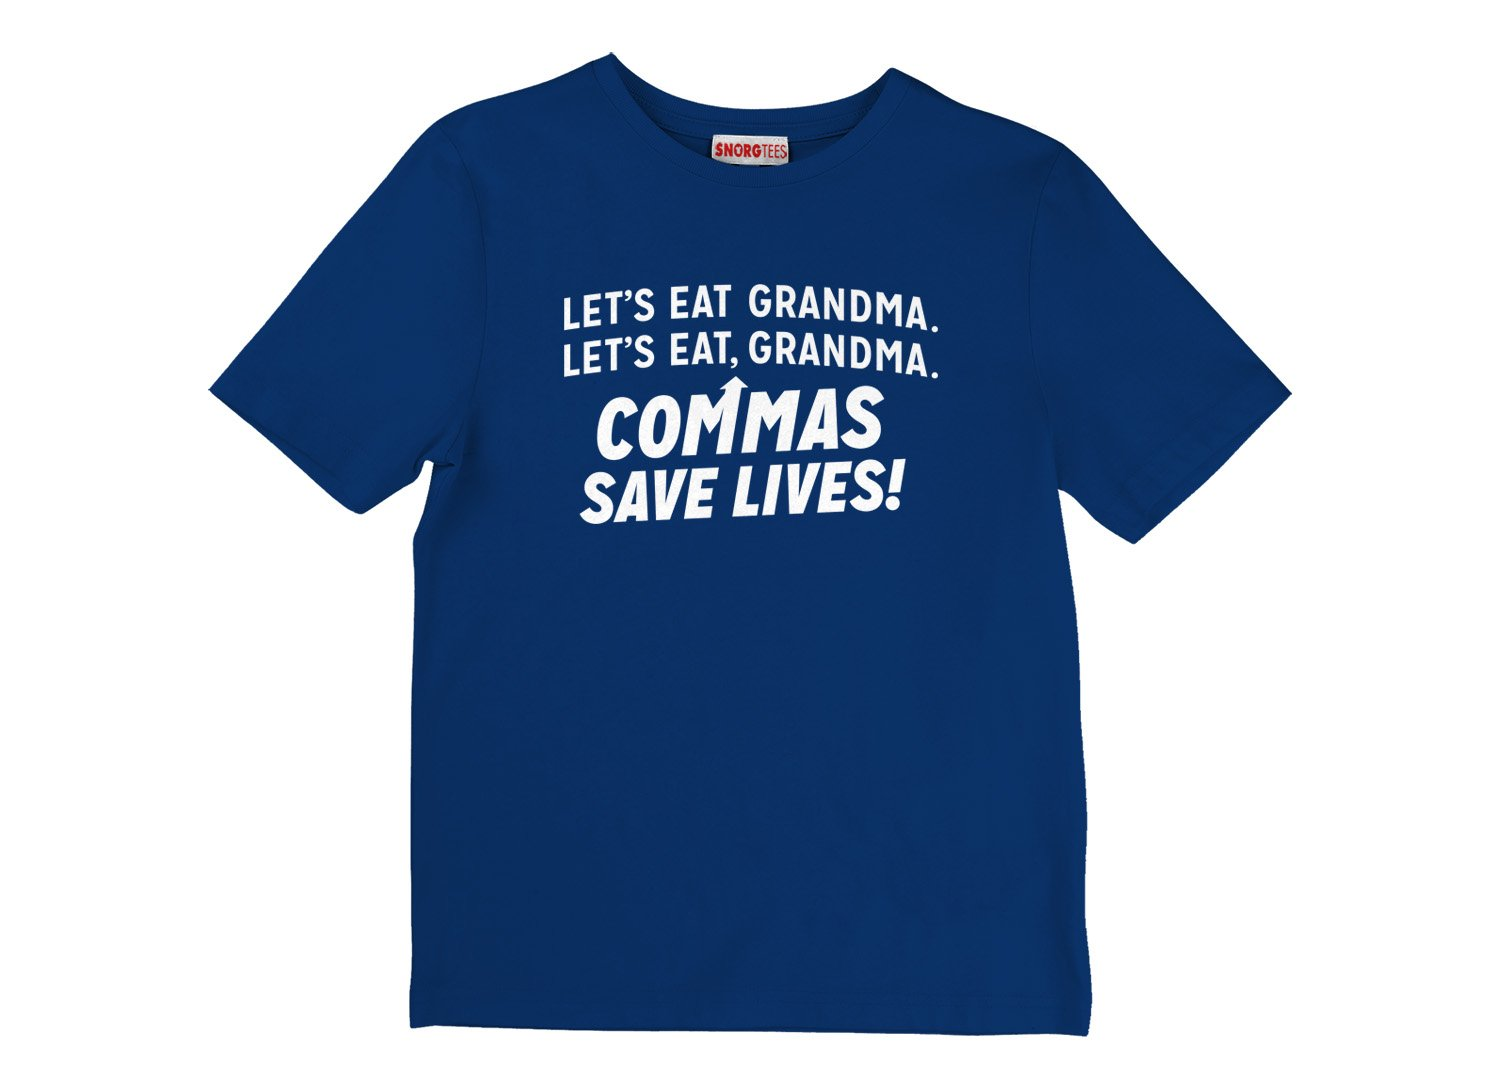 Commas Save Lives! on Kids T-Shirt